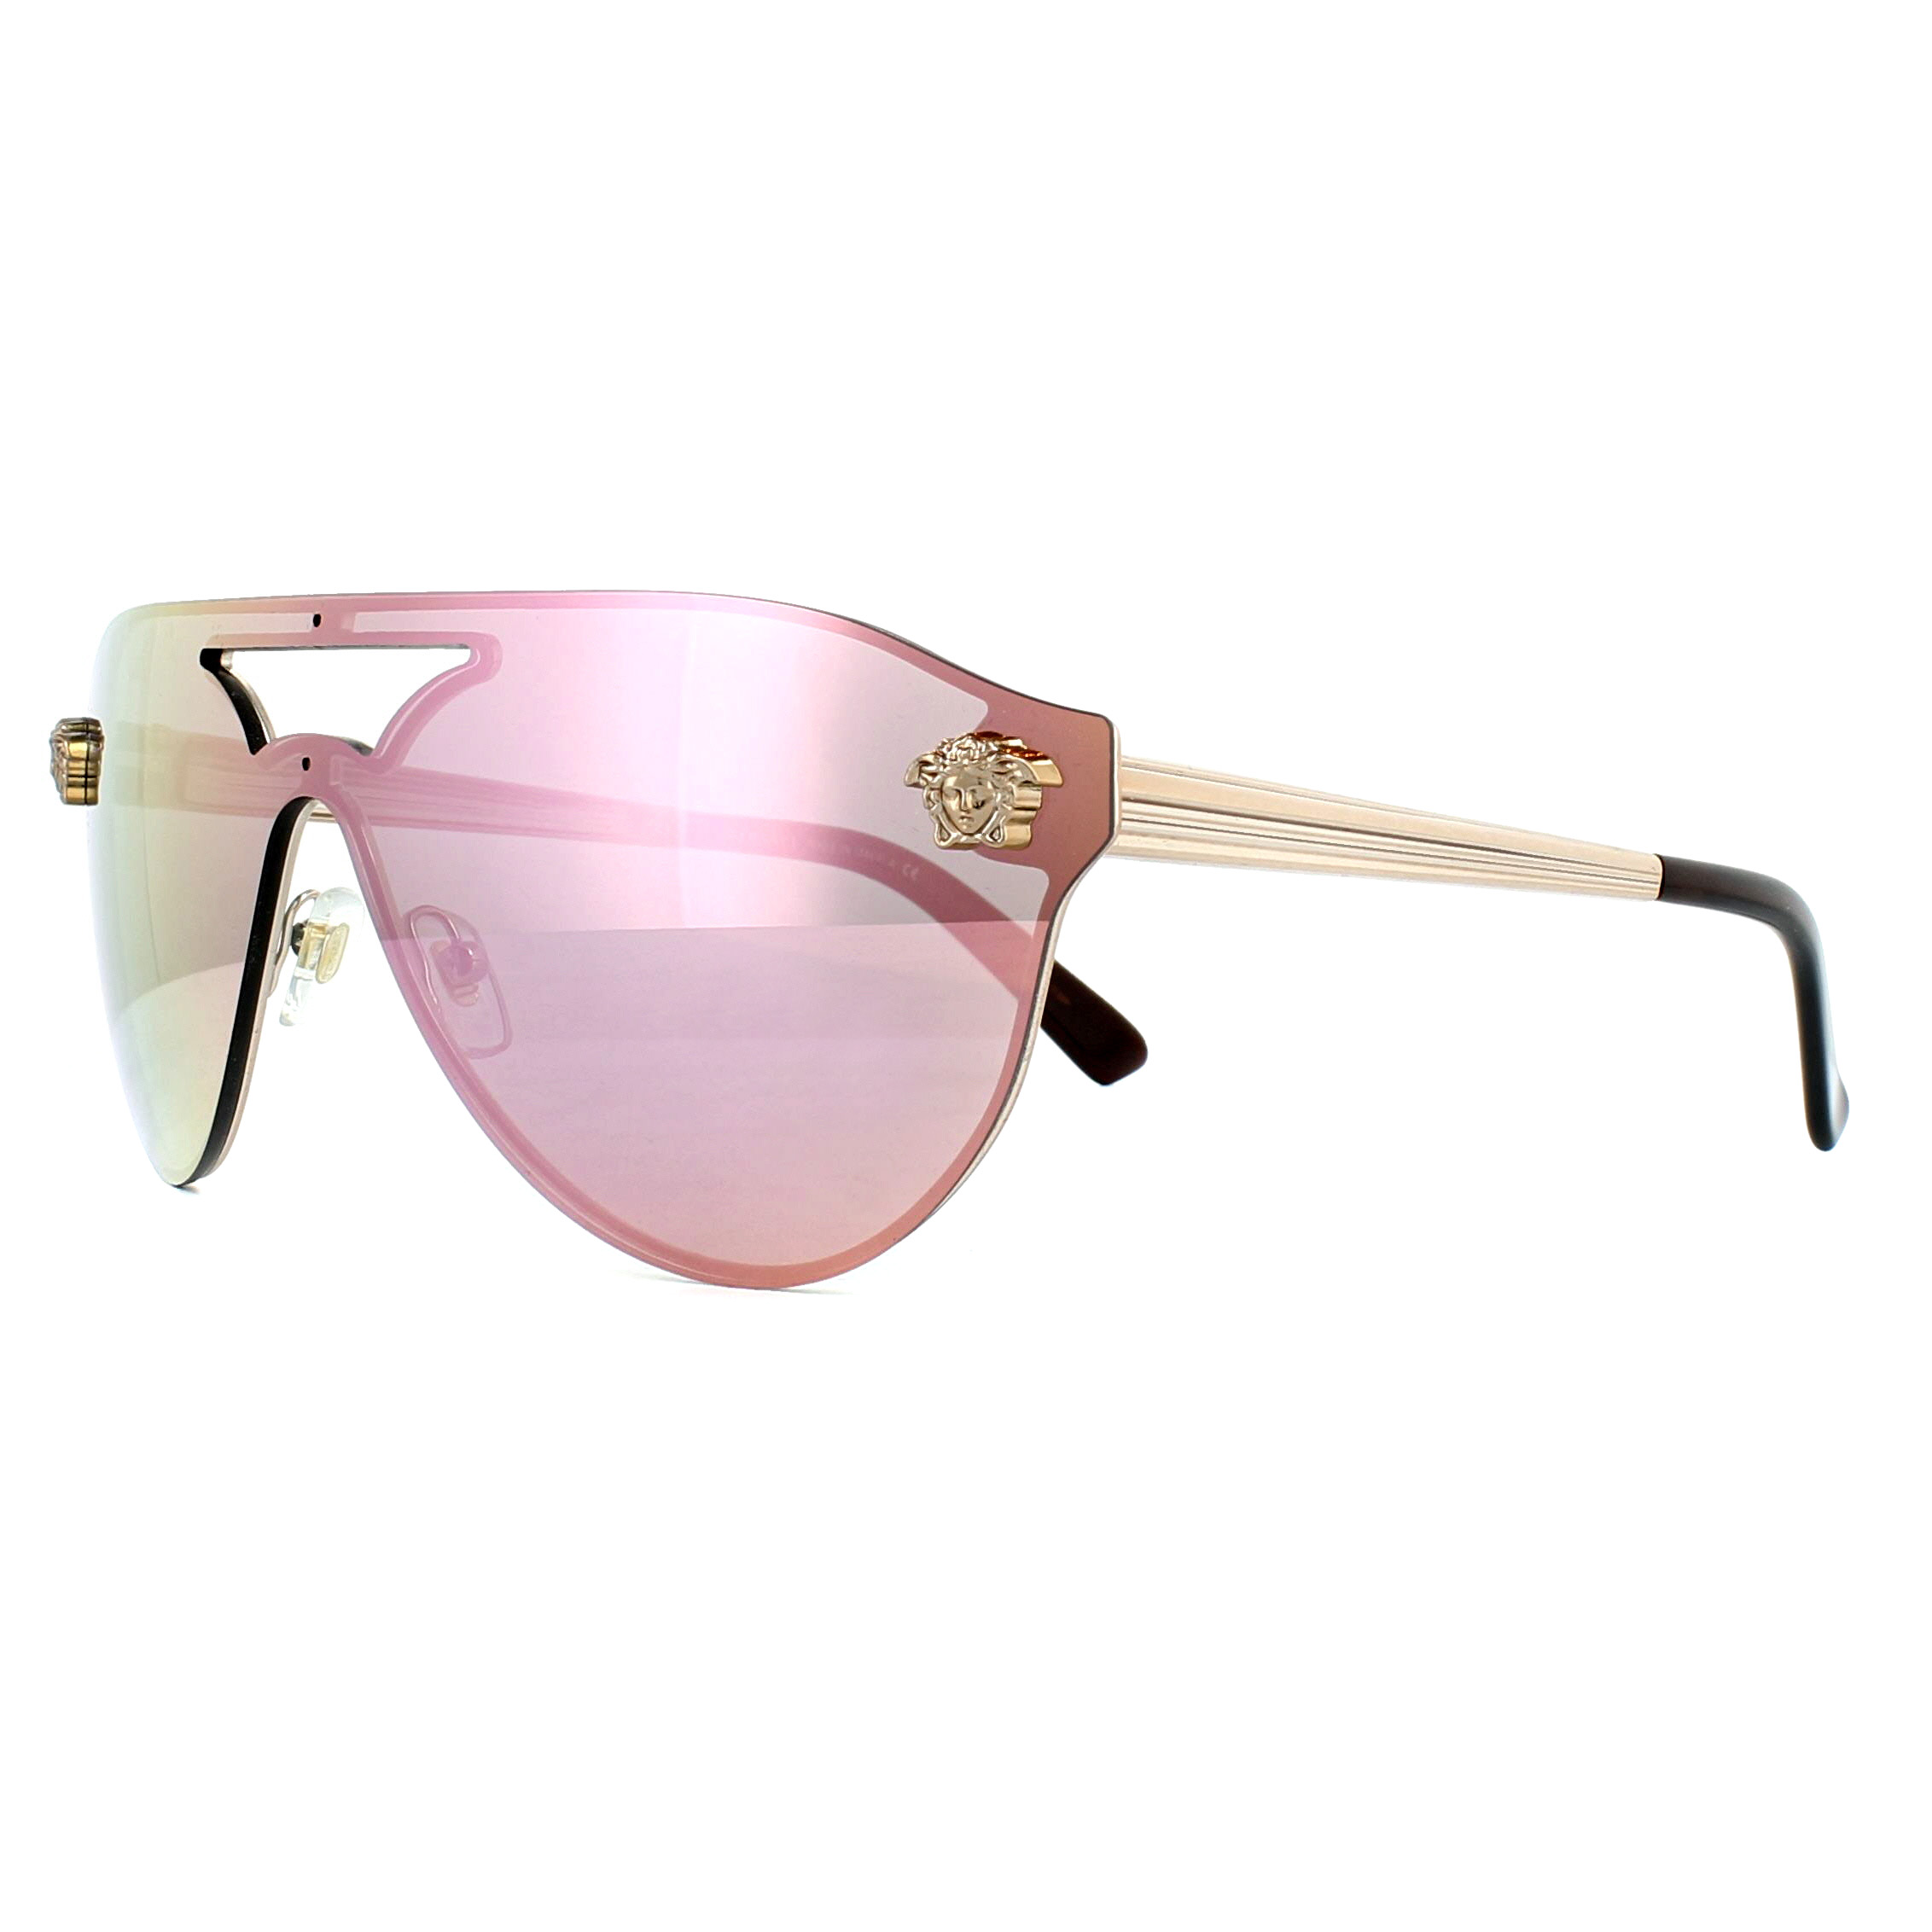 5a678d2f32a9 Sentinel Versace Sunglasses 2161 10524Z Copper Yellow Rose Mirror